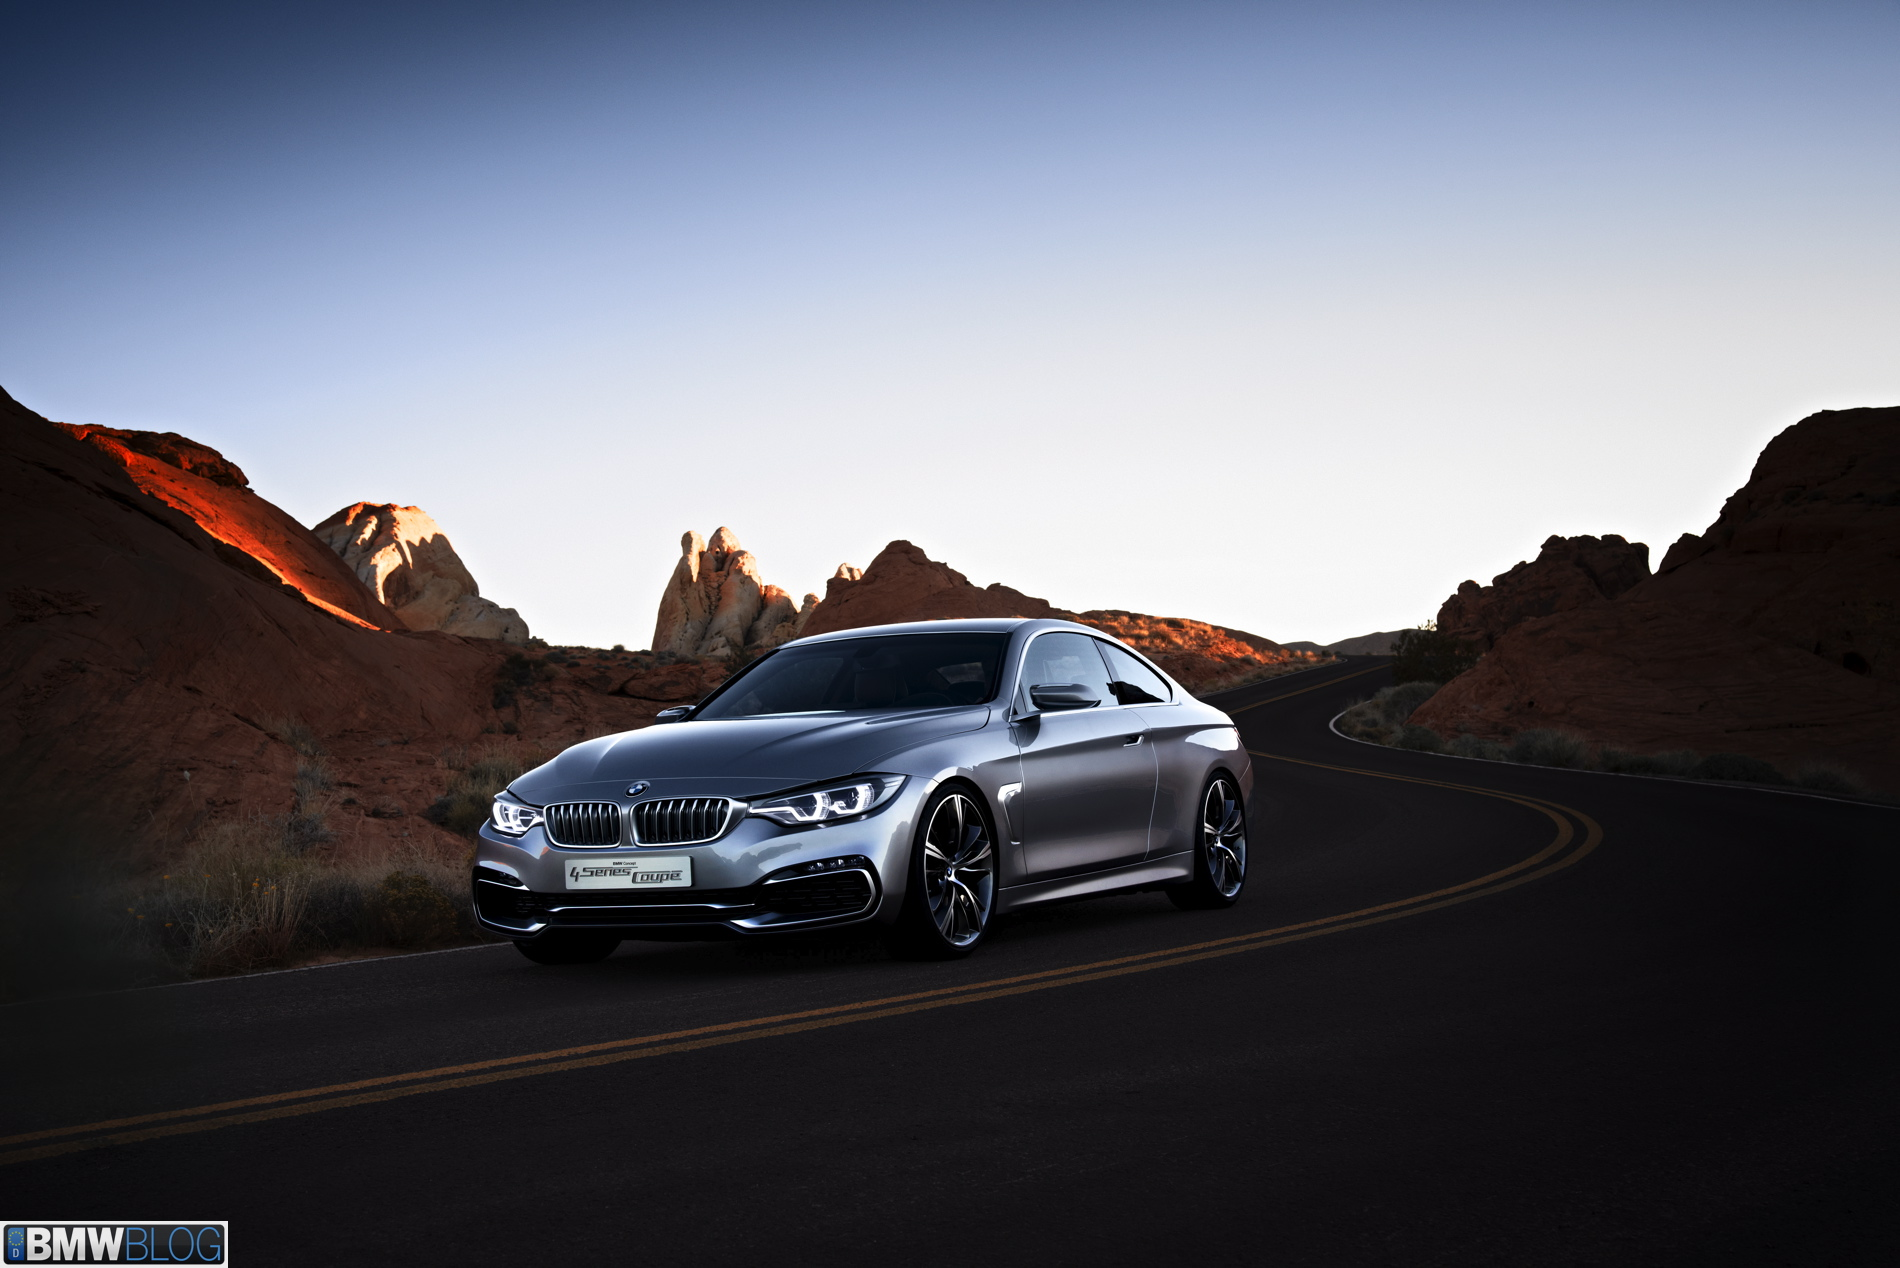 BMW 4 series images 063